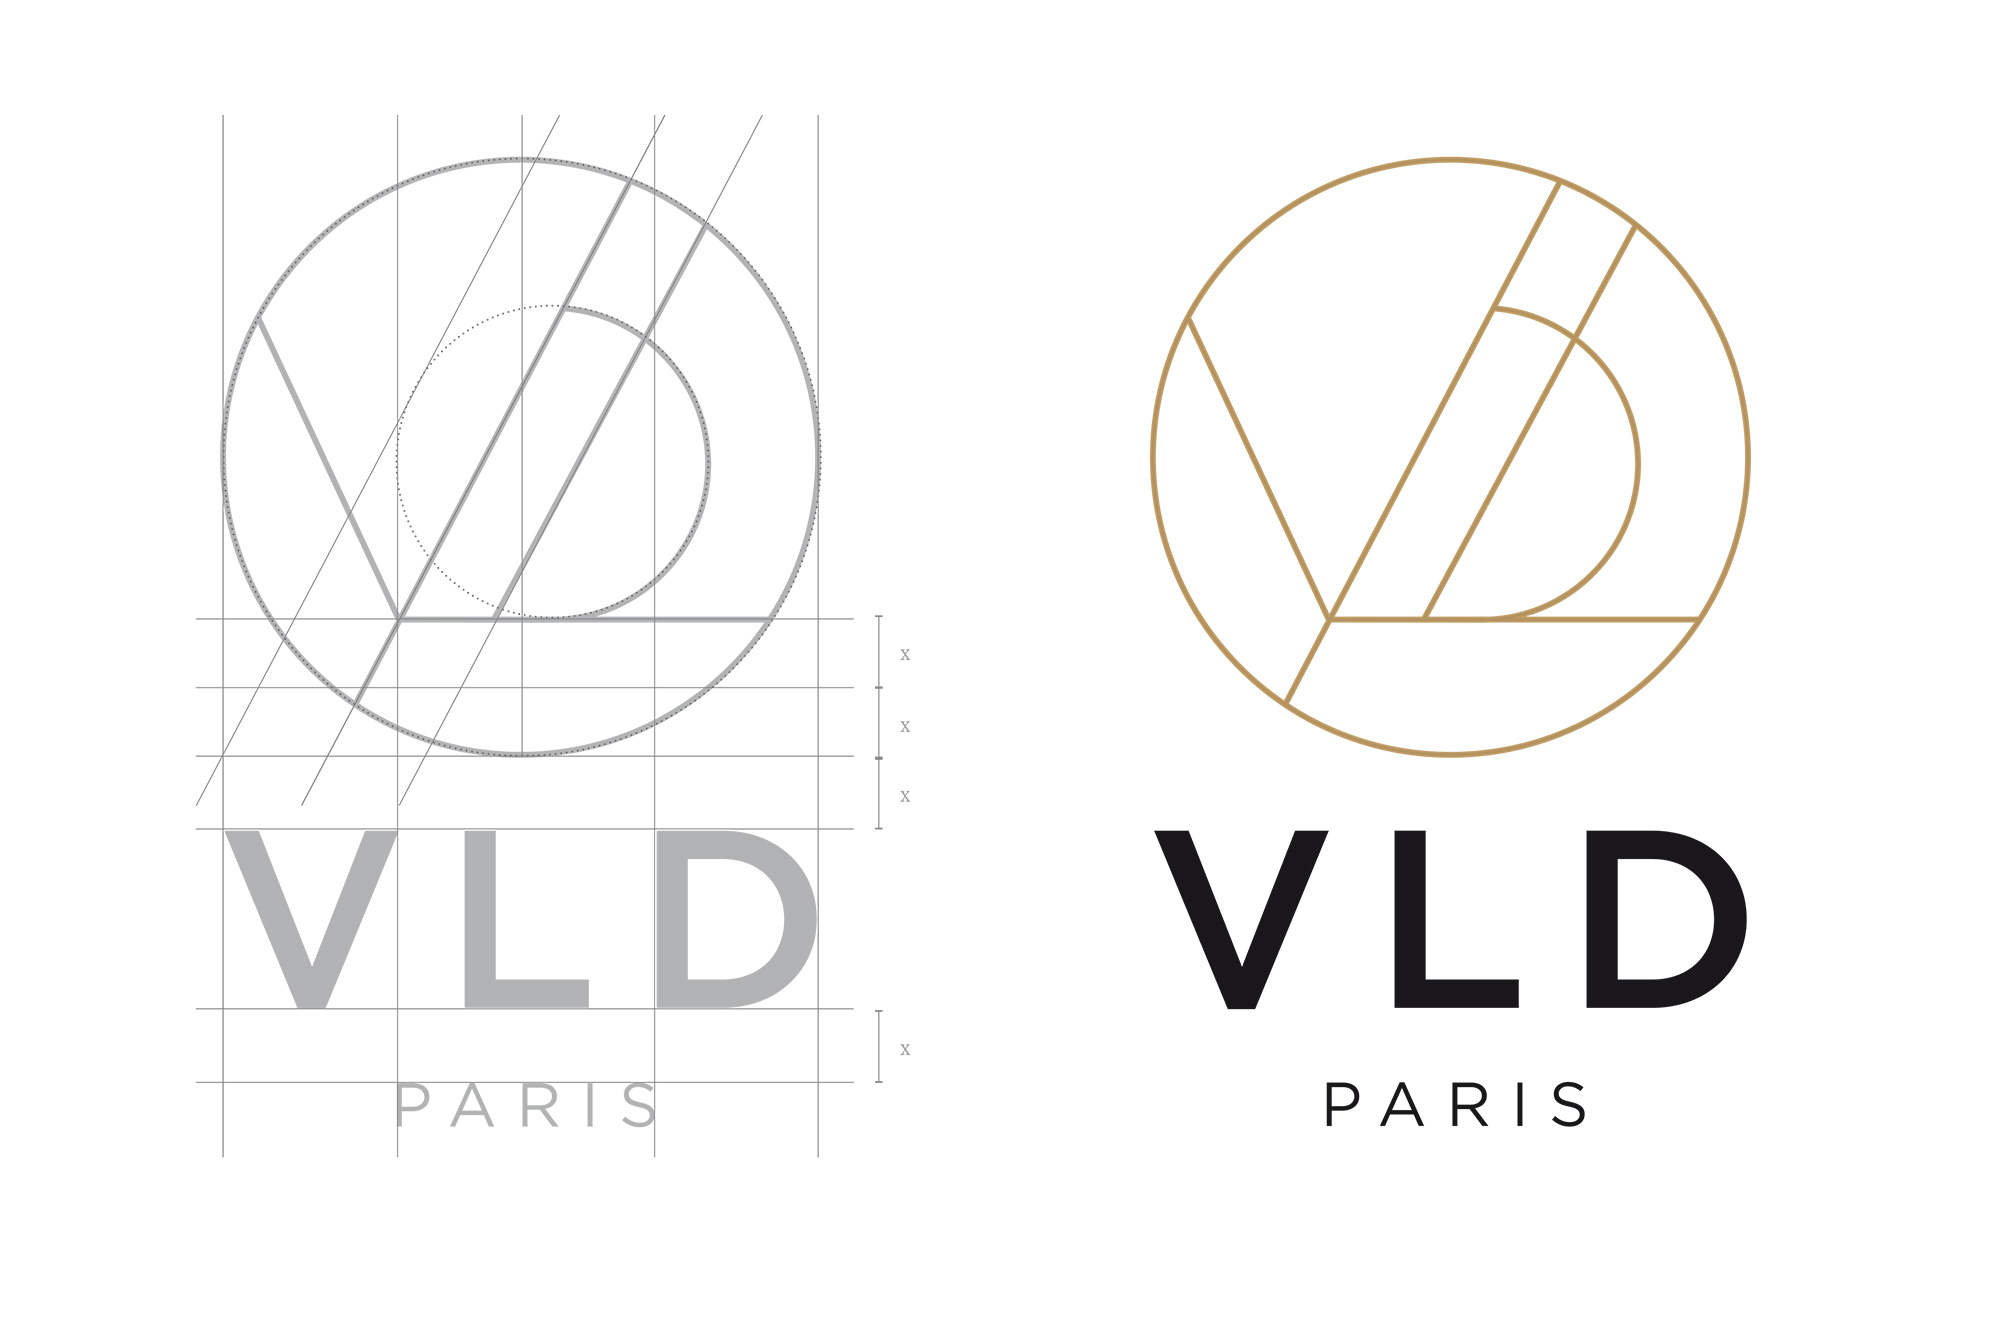 identité visuelle vld Paris - Narrative